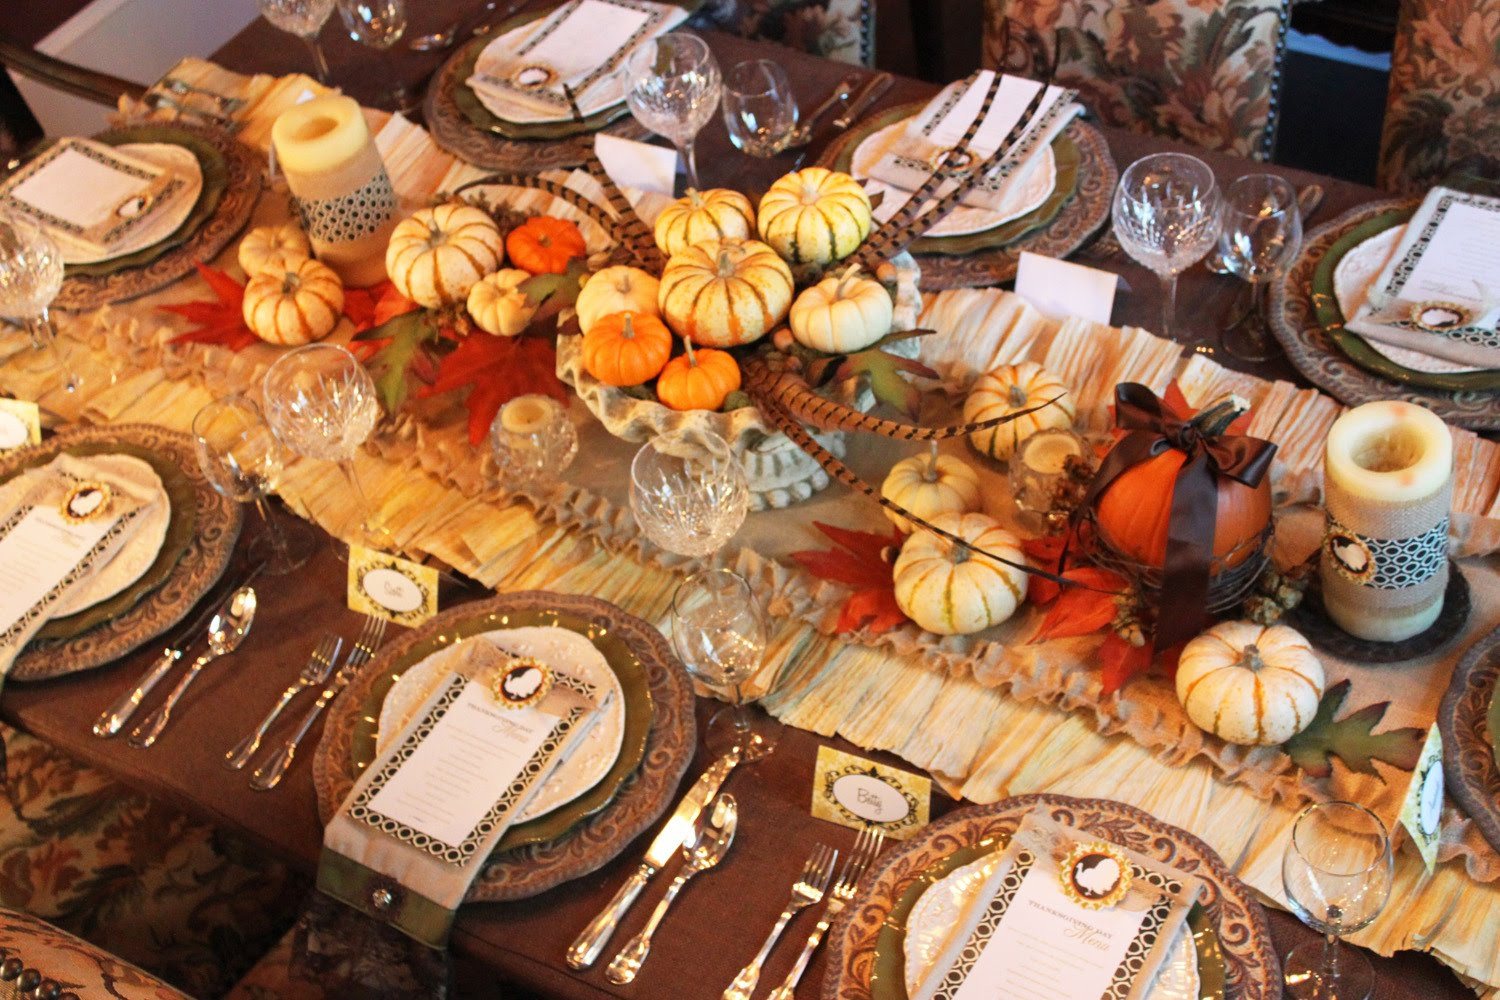 Thanksgiving Dinner Table Decorations  A feast for the eyes Thanksgiving dinner table decorations